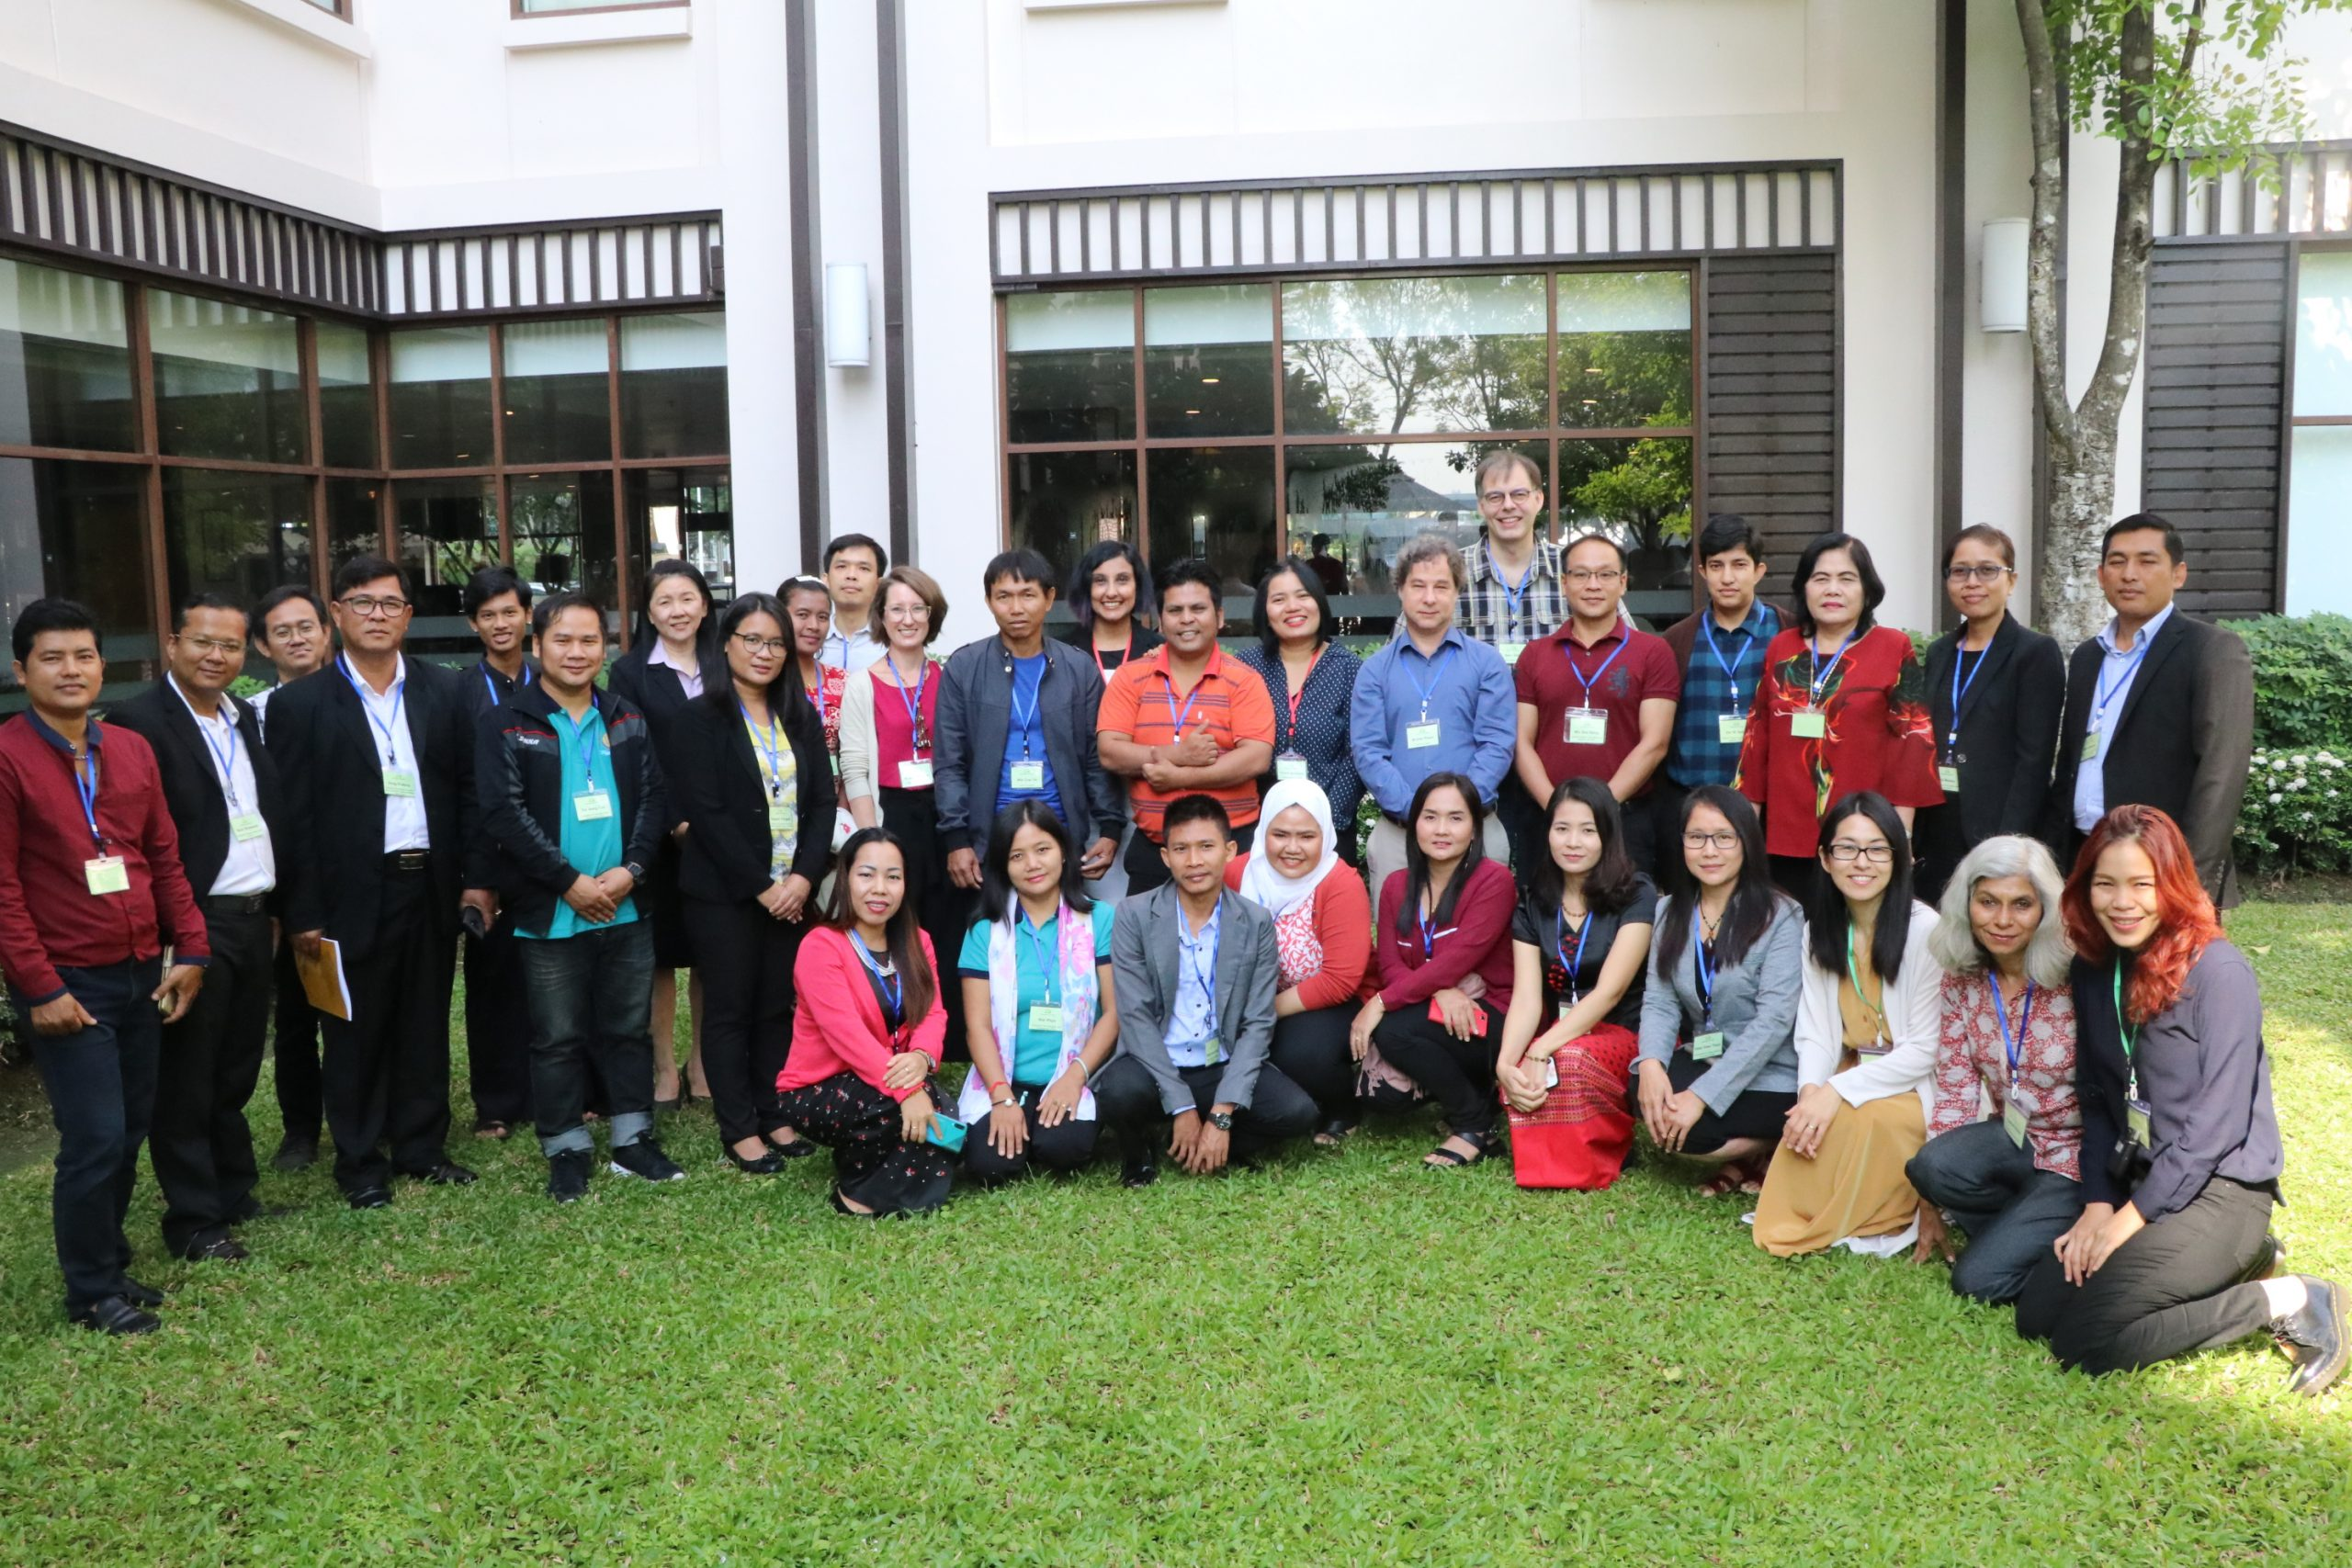 Group photo at the MMN Multi-Stakeholder Workshop on Migrant Agricultural Workers in Thailand, December 2019, Bangkok, Thailand